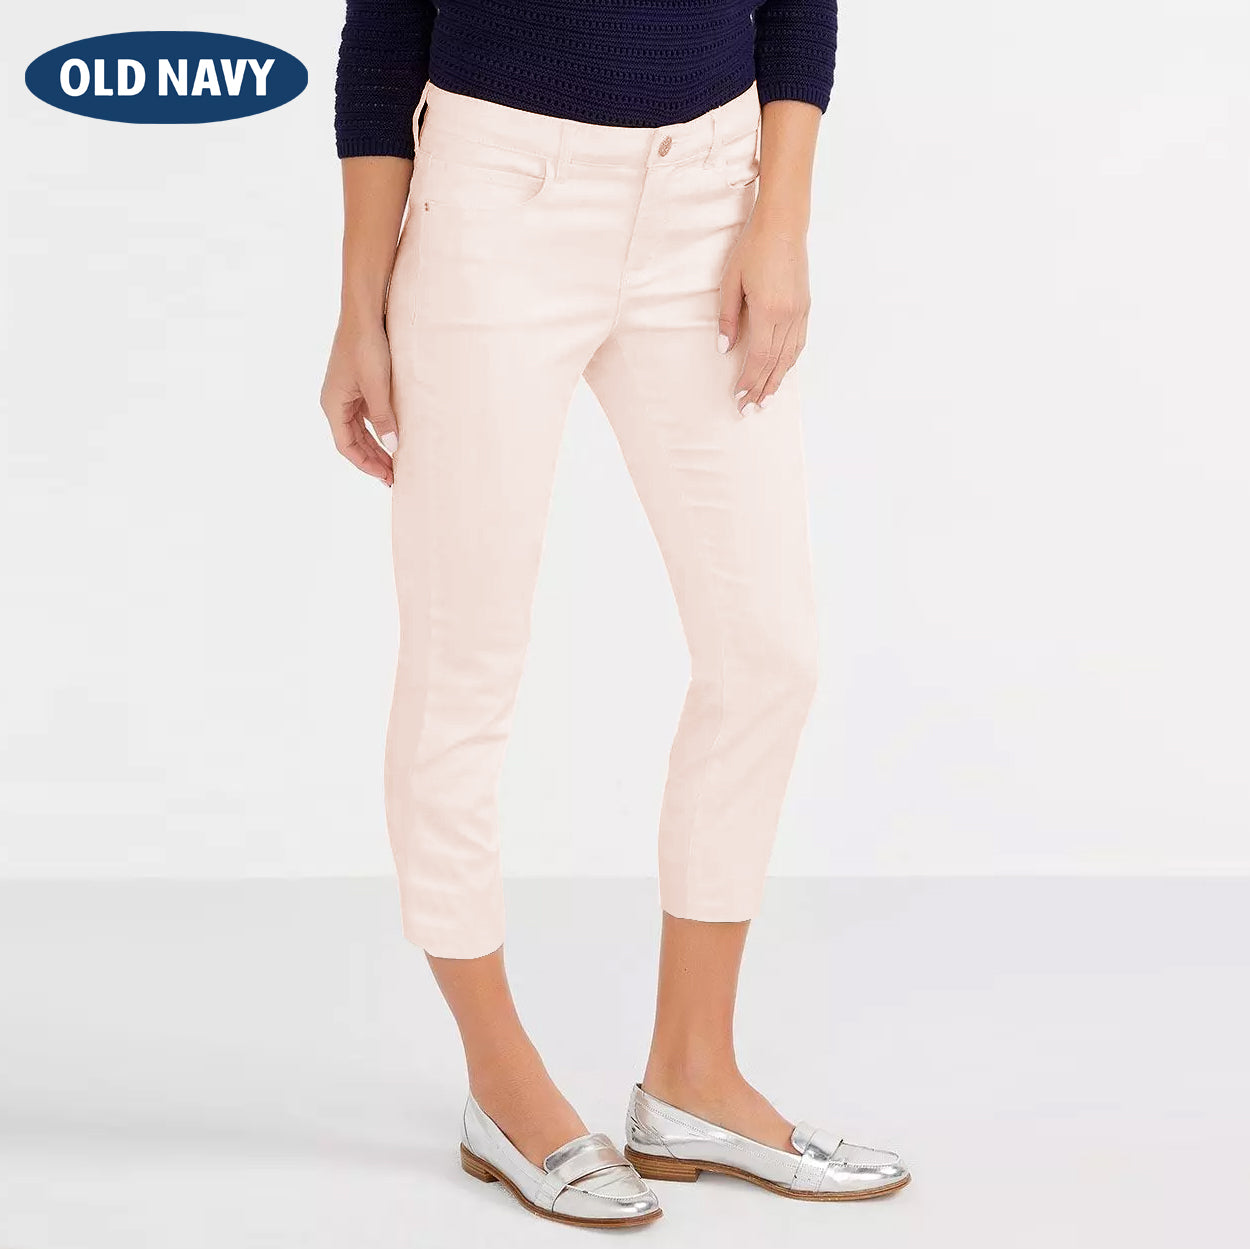 Old Navy Stylish Slim Fit Capri For Ladies-Light Pink-NA8053